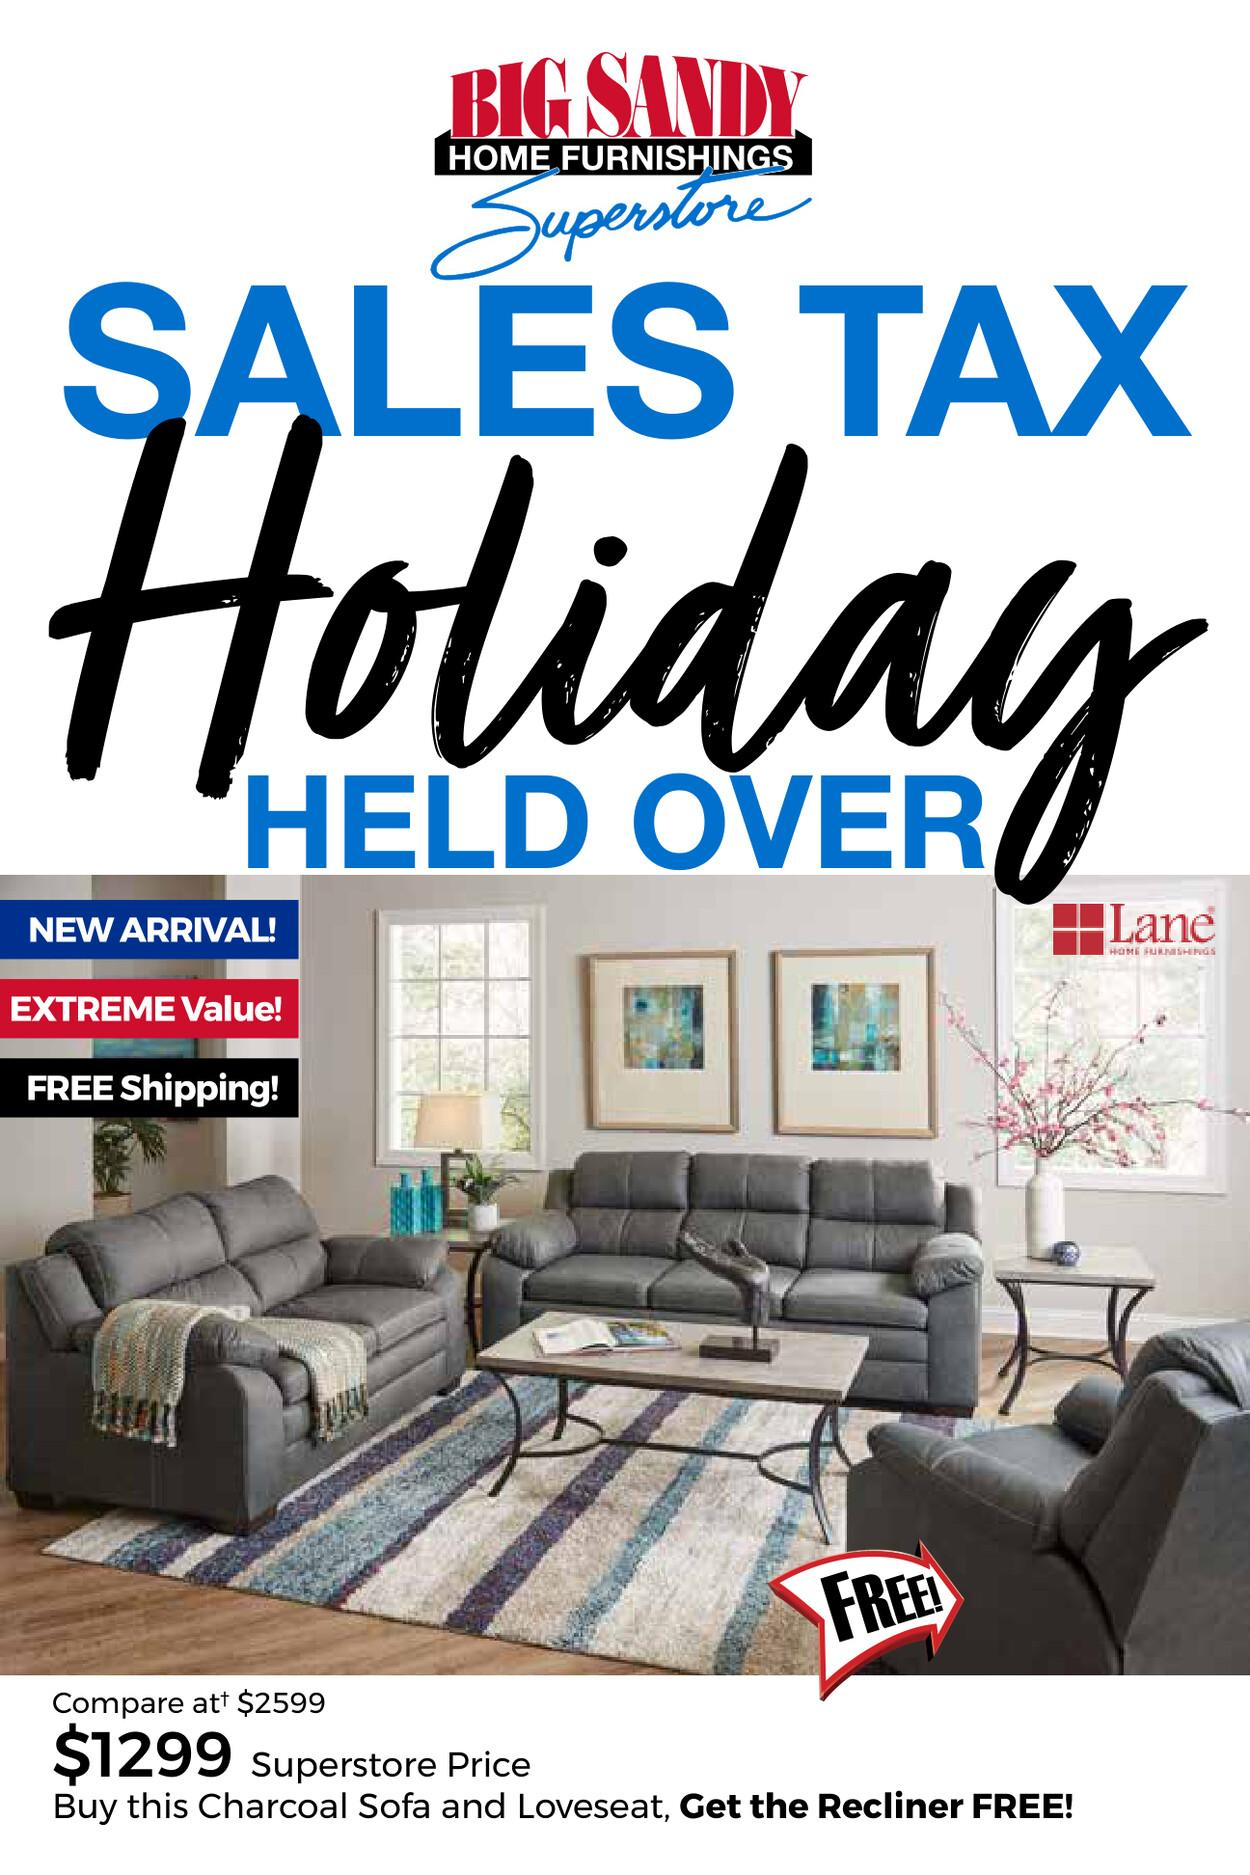 Sales Tax Holiday Held Over